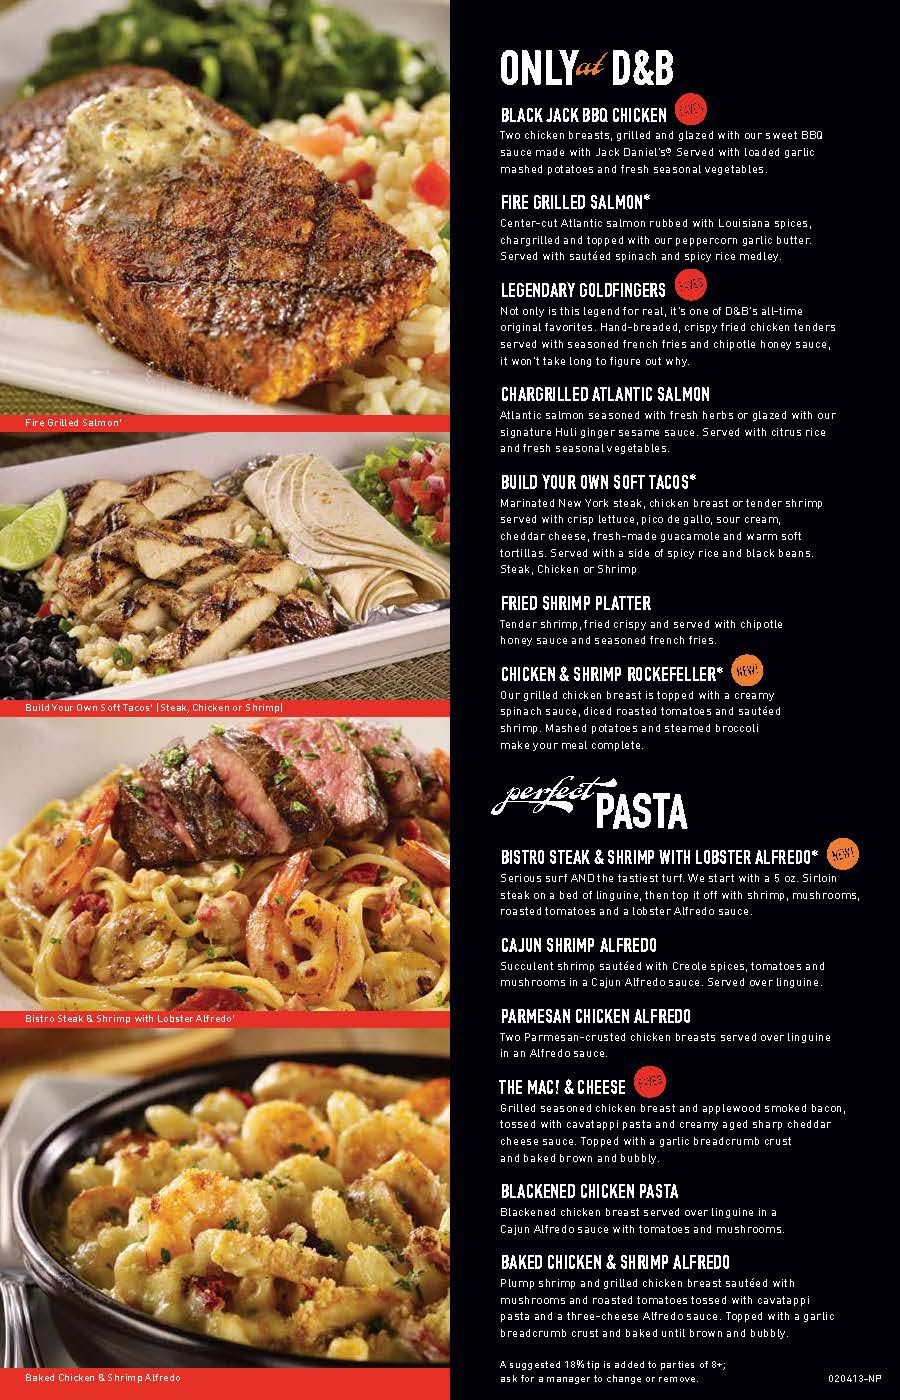 88 rows · Dave And Buster's Menu Prices, Price List. List of prices for all items on the Dave And .